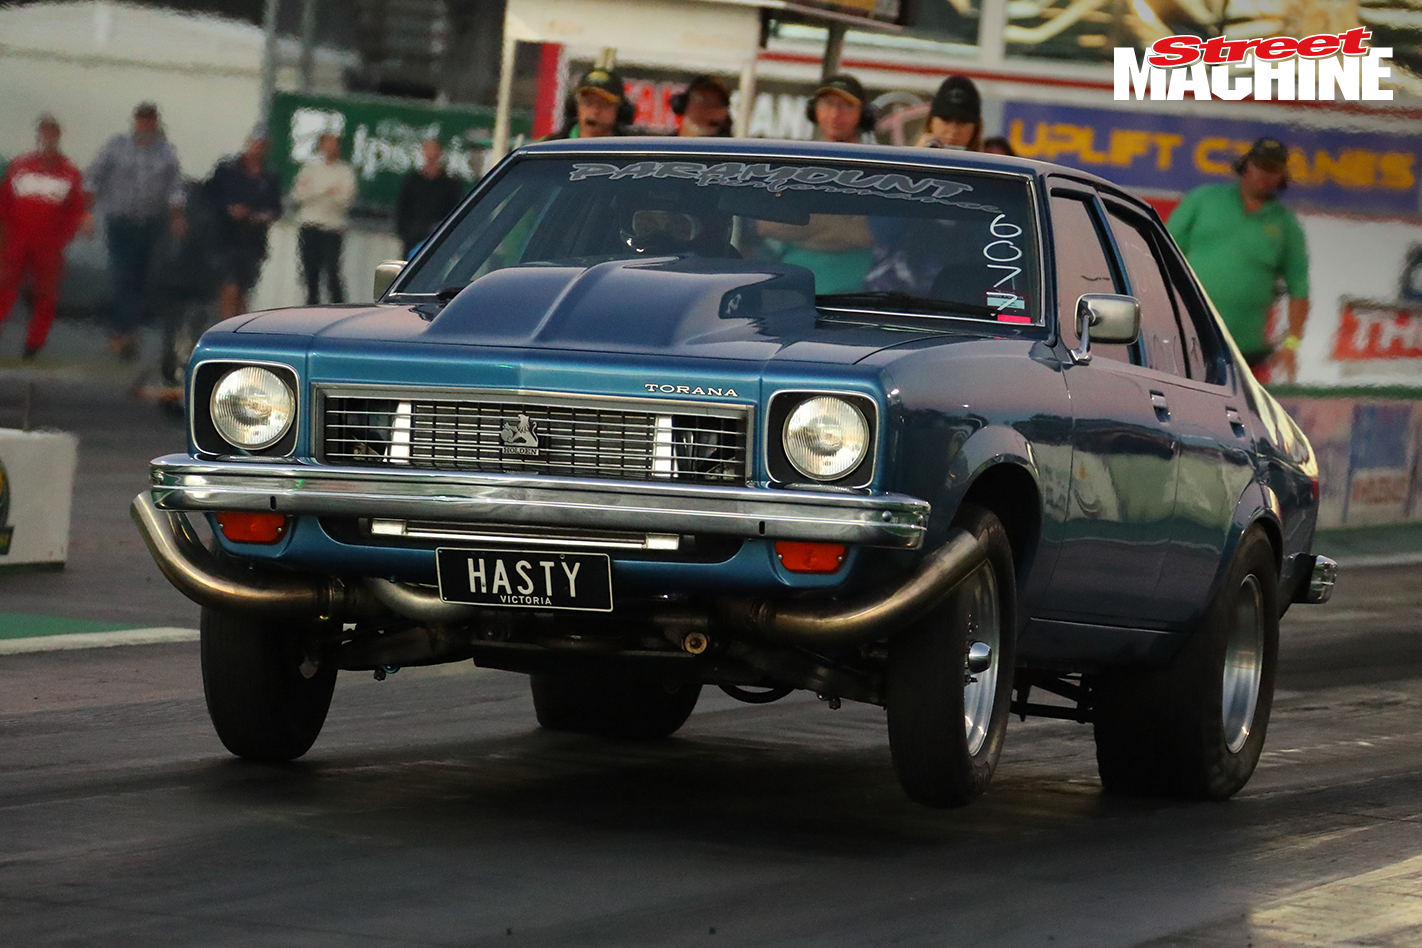 Holden LH Torana Turbo HASTY